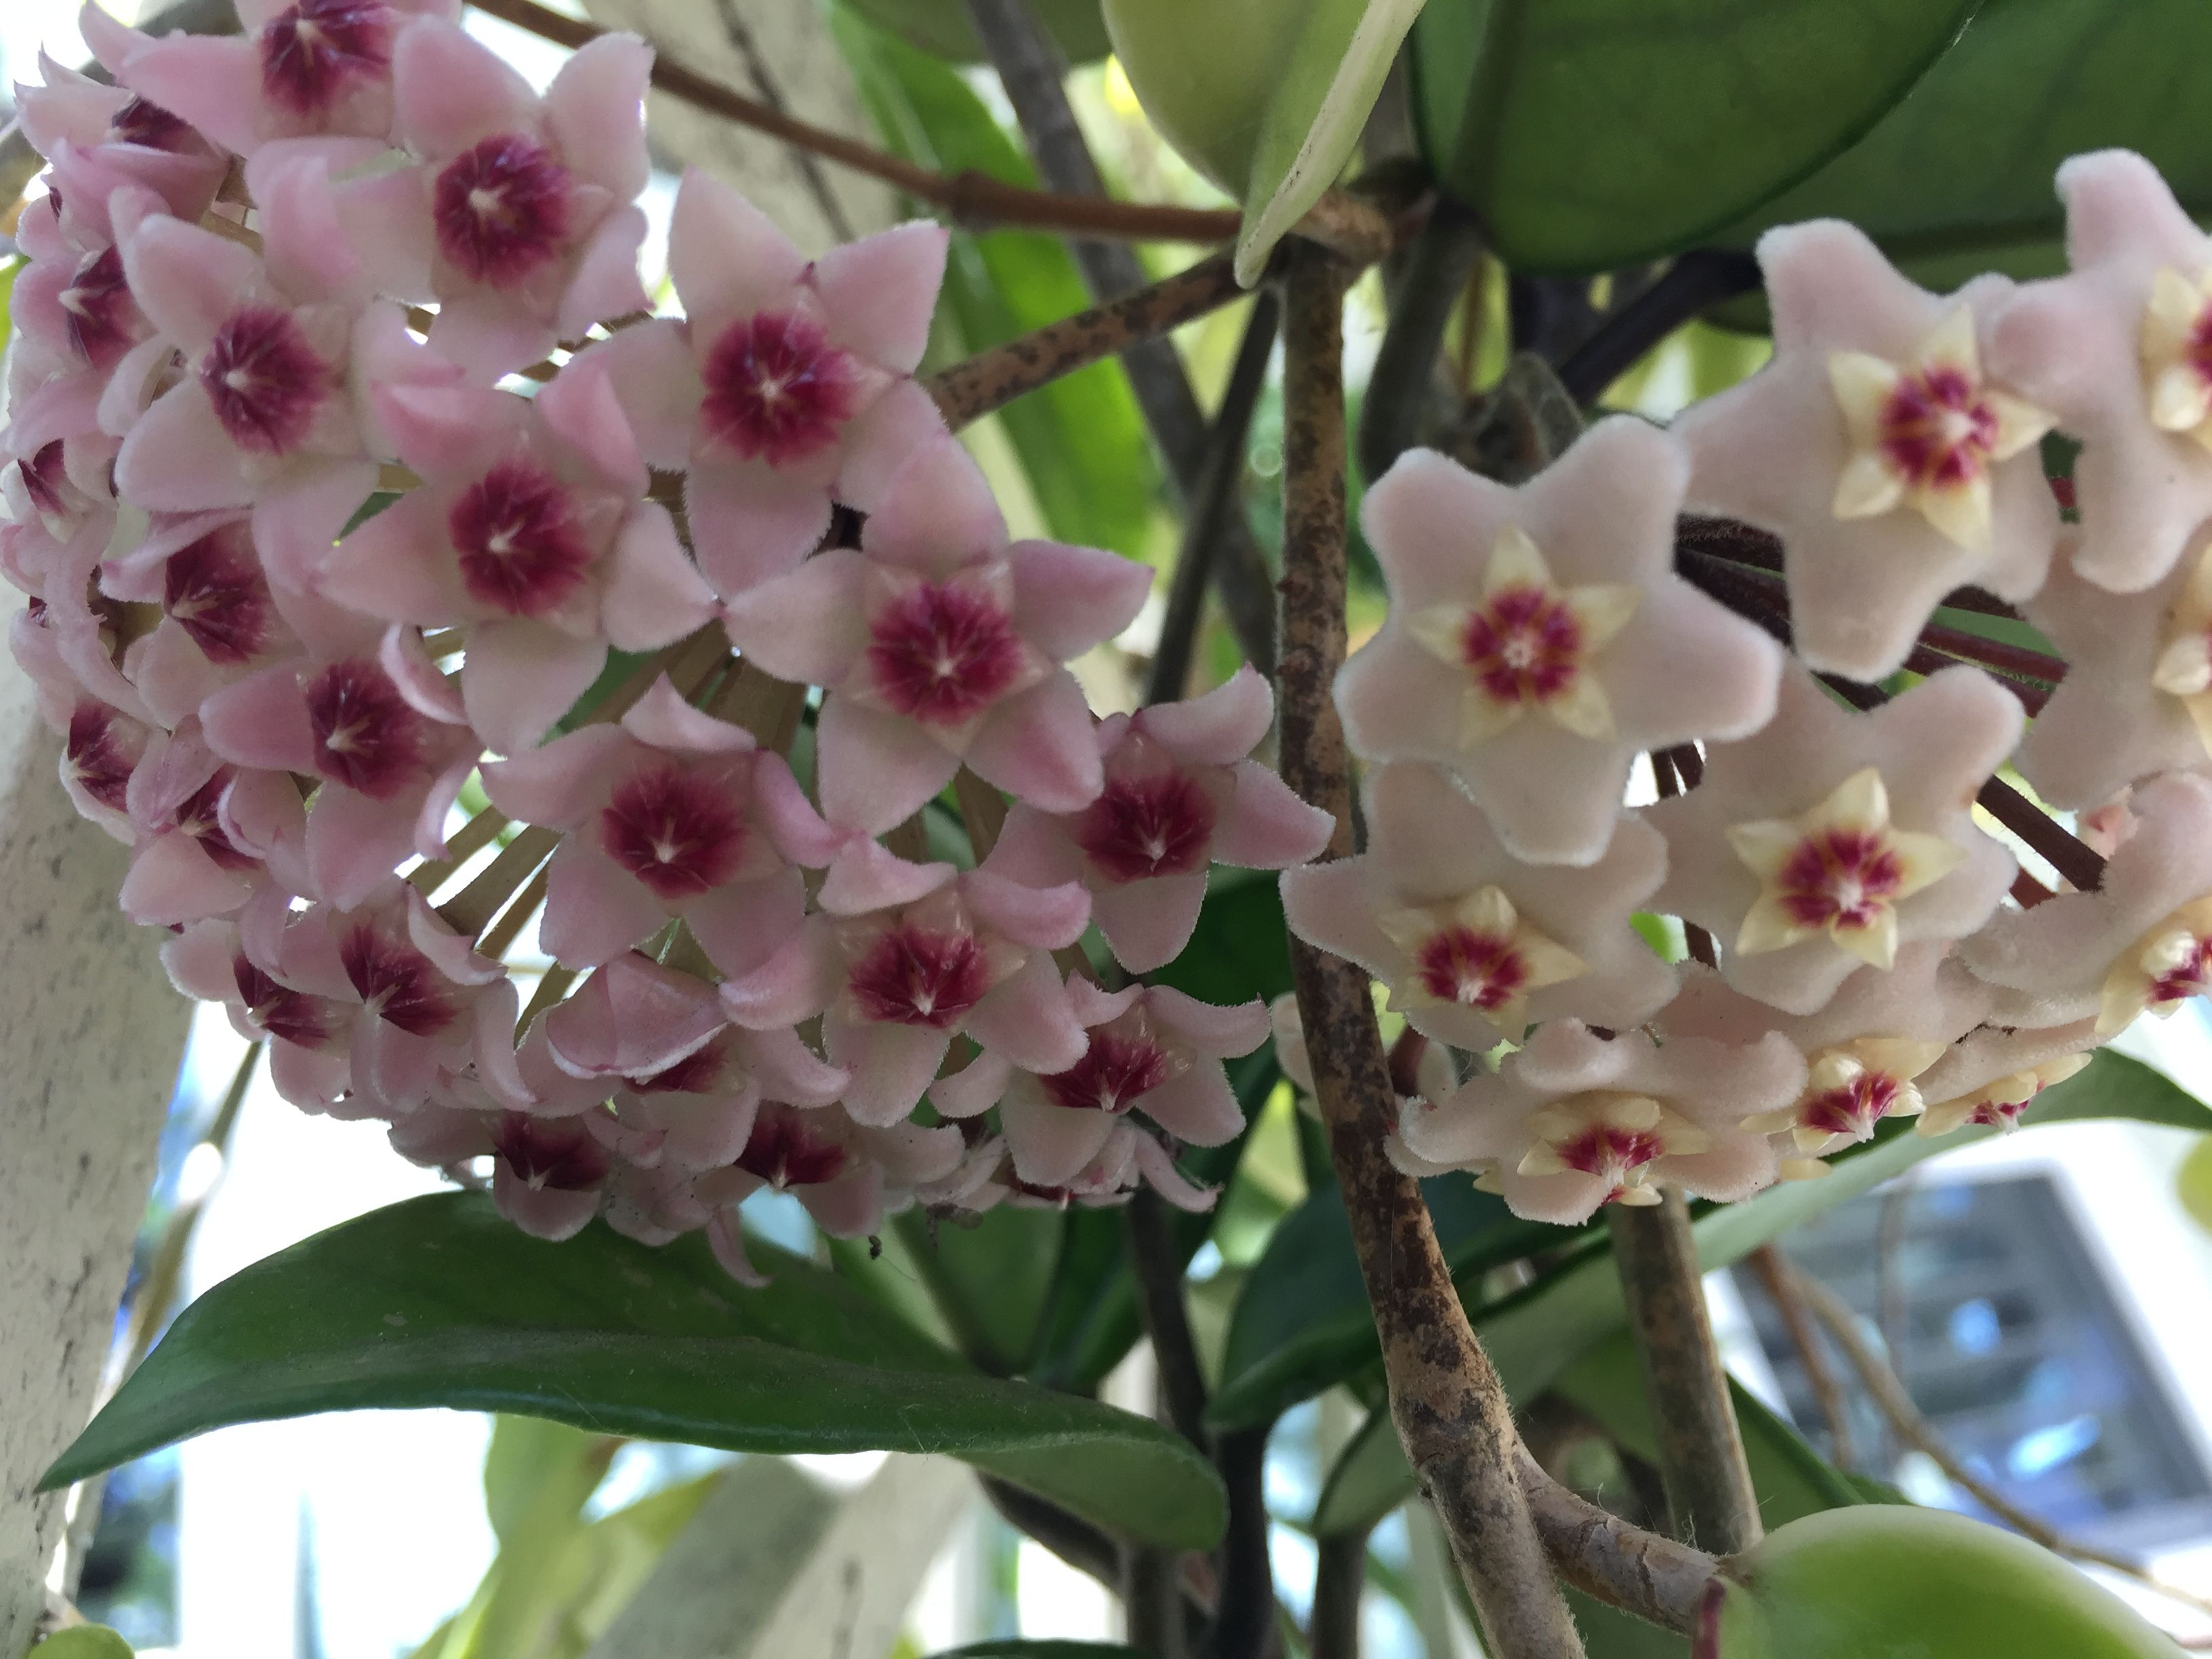 Hoya cagayanensis plant waxplant cutting with leaves unrooted